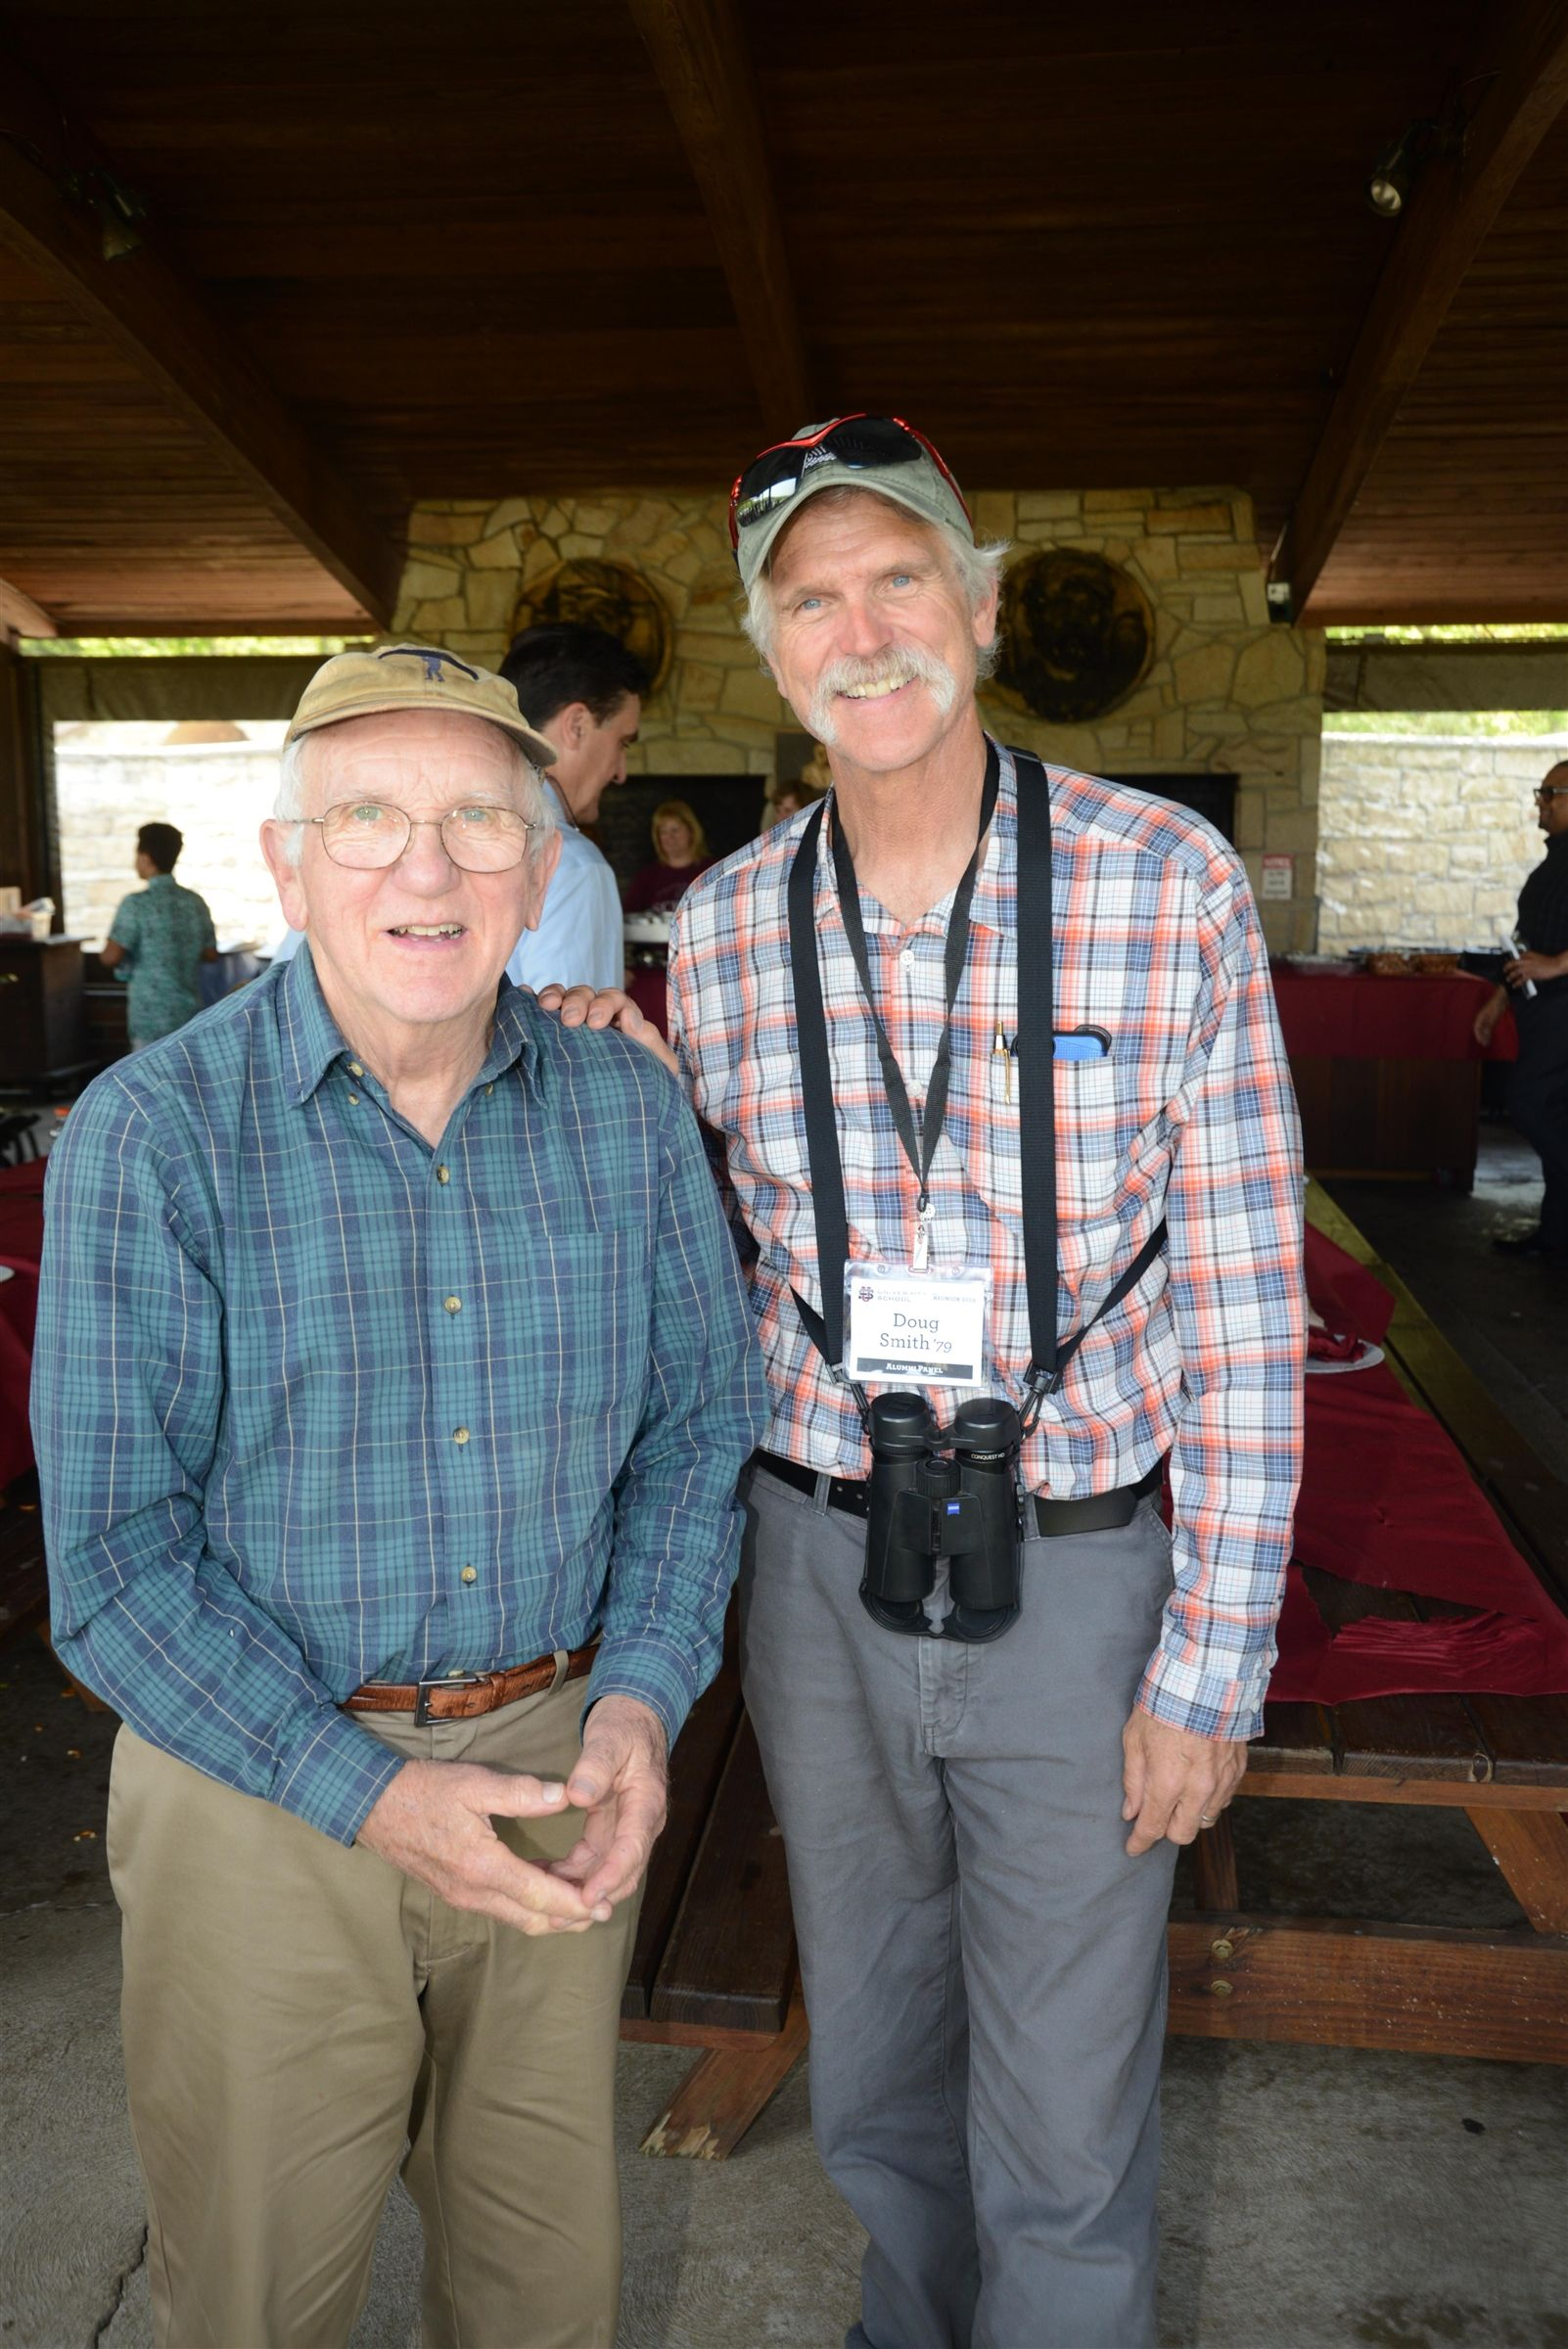 US faculty legend Terry Harmon and Doug Smith '79 led an outdoor campus tour after the Alumni Picnic.